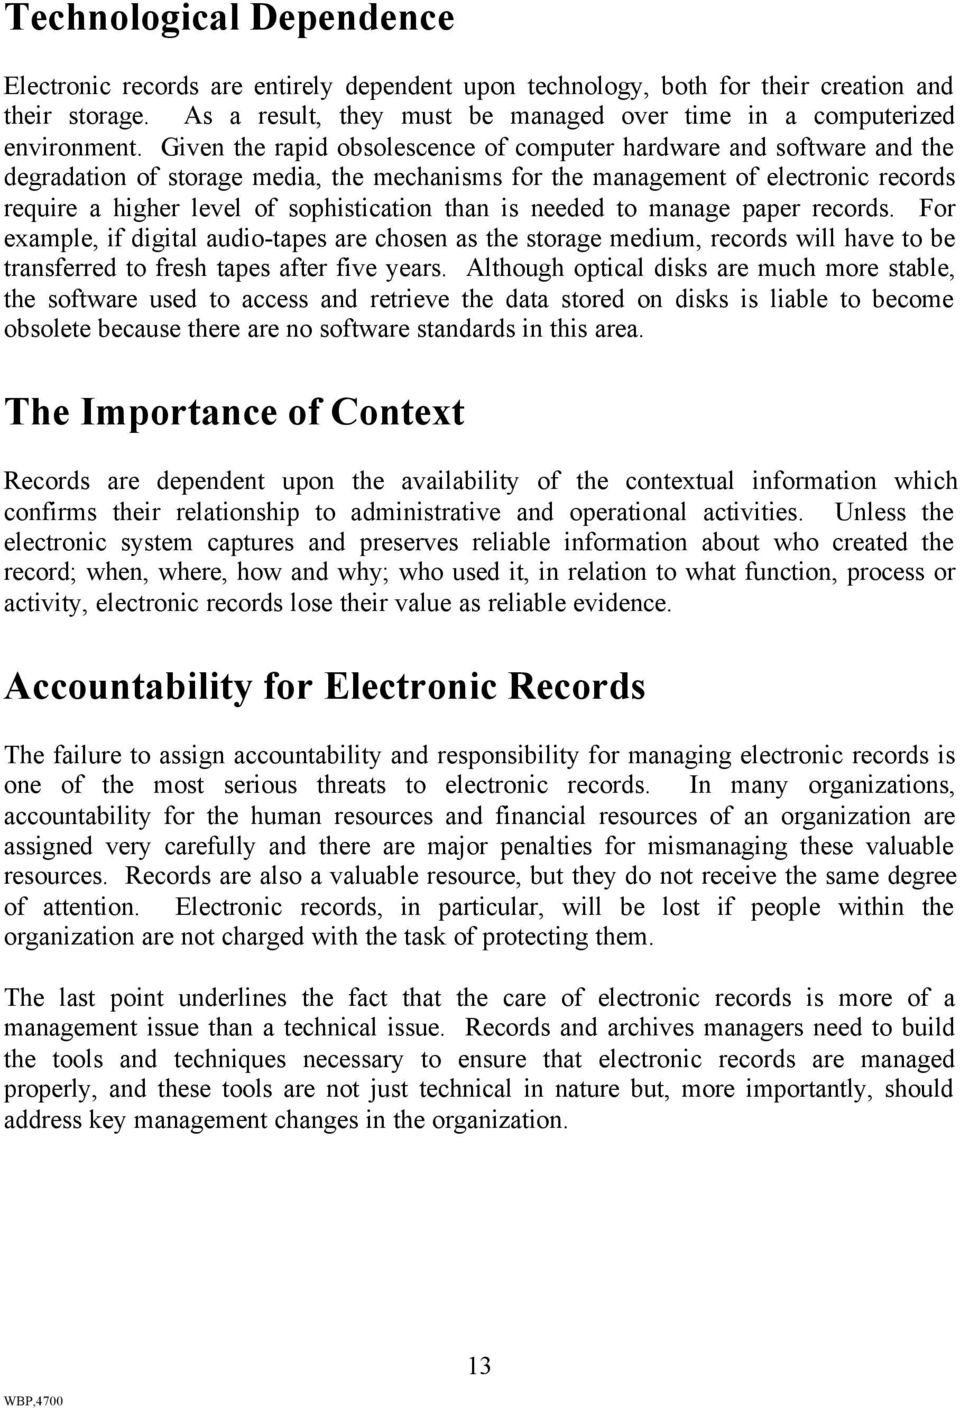 Given the rapid obsolescence of computer hardware and software and the degradation of storage media, the mechanisms for the management of electronic records require a higher level of sophistication